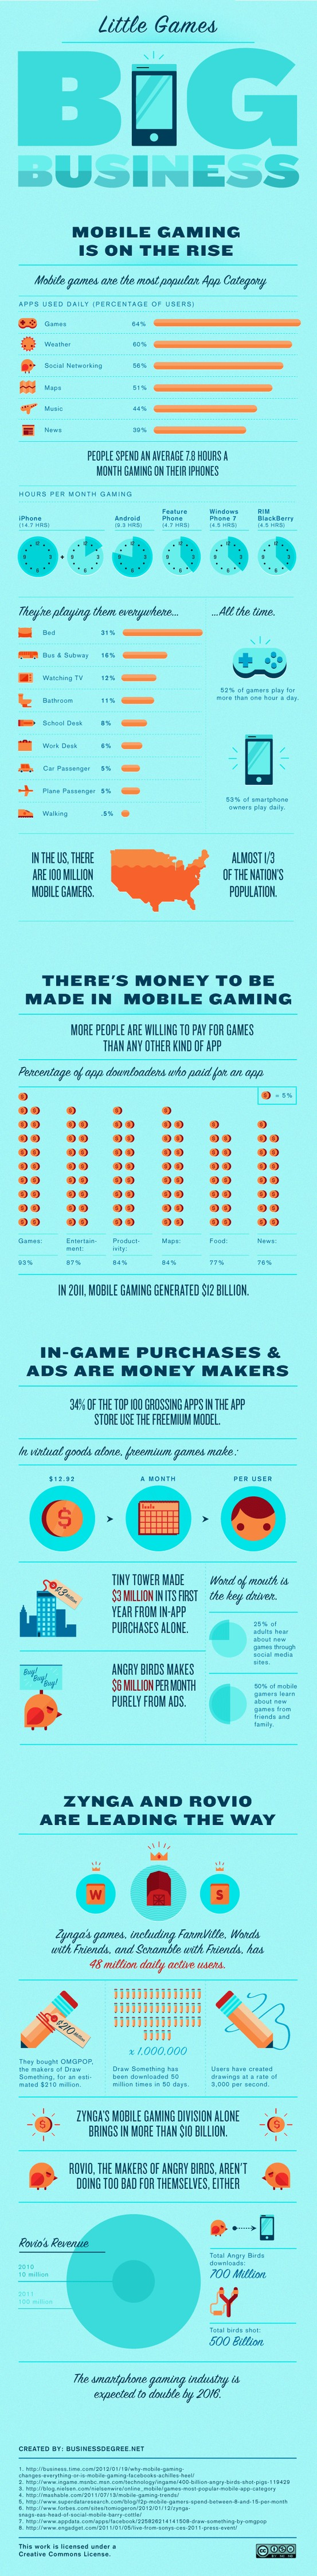 Little Games, Big Business: Mobile Gaming is on the Rise